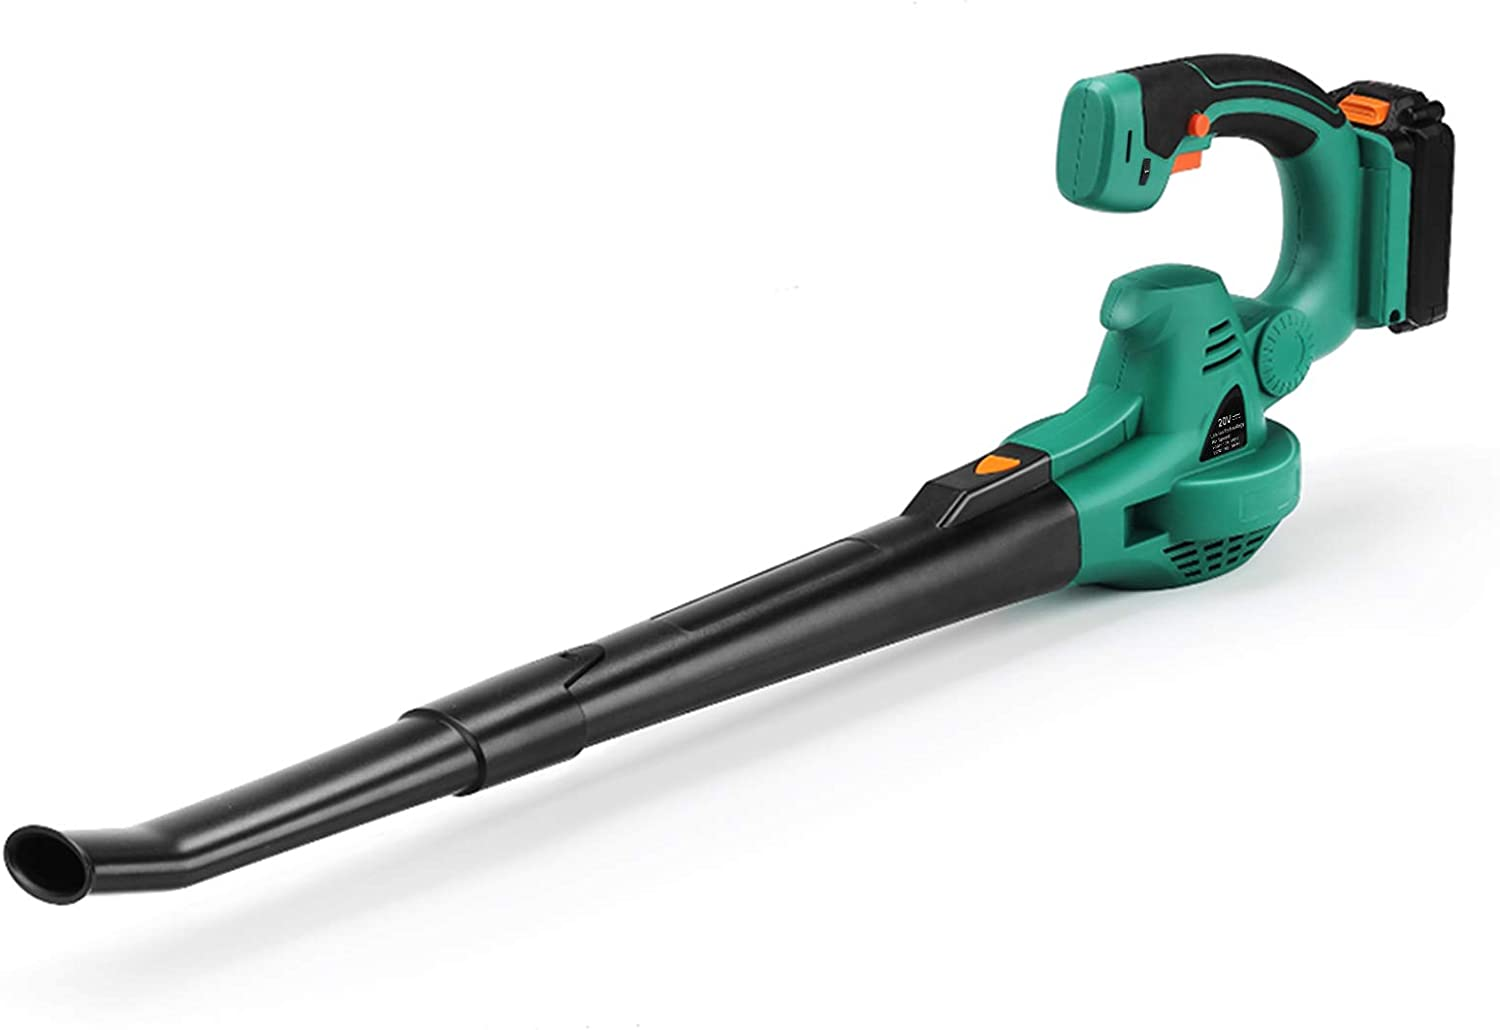 Cordless Leaf Blower, Powerful Electric Lightweight Leaf Blowers 20V MAX Battery-powered with 120mph Output, Adjustable Grip for Blowing Leaves, Clearing Dust (Battery & Fast Charger Included)